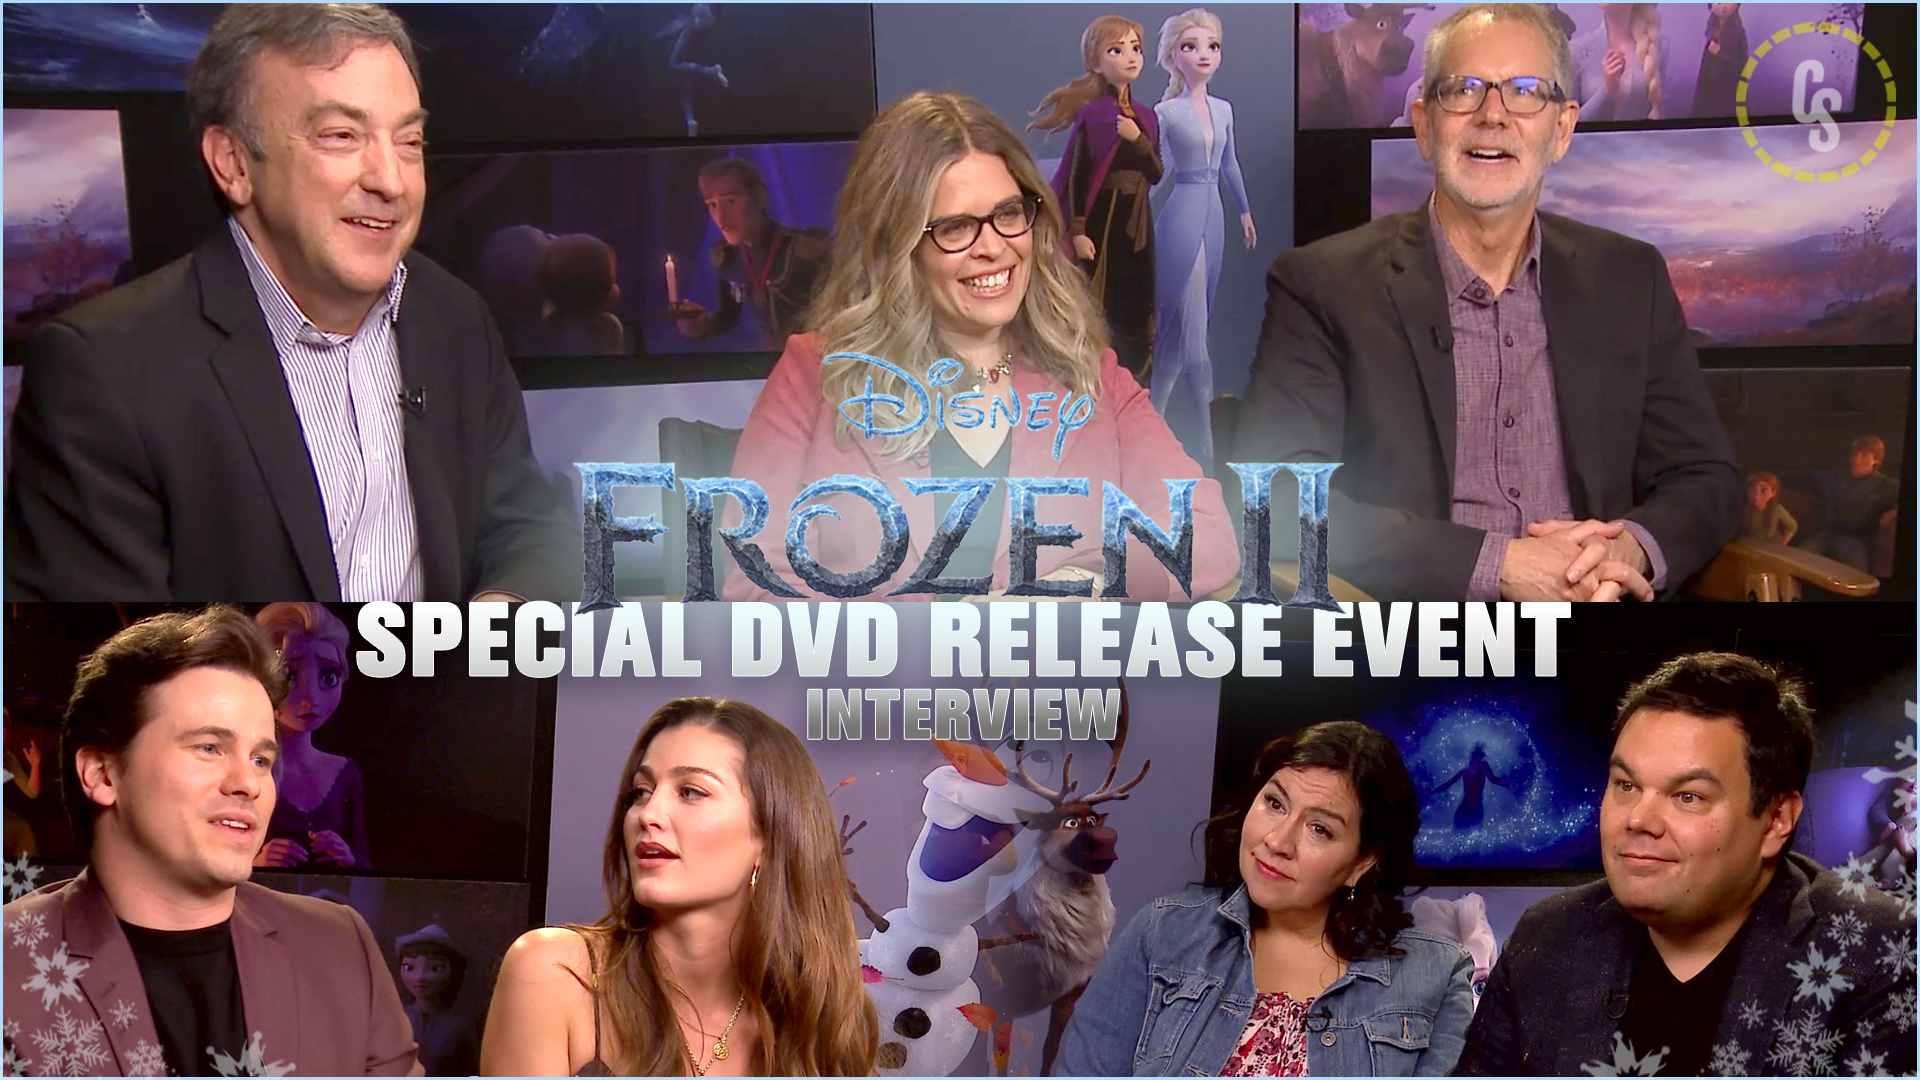 CS Video: The Cast & Crew of Frozen II!